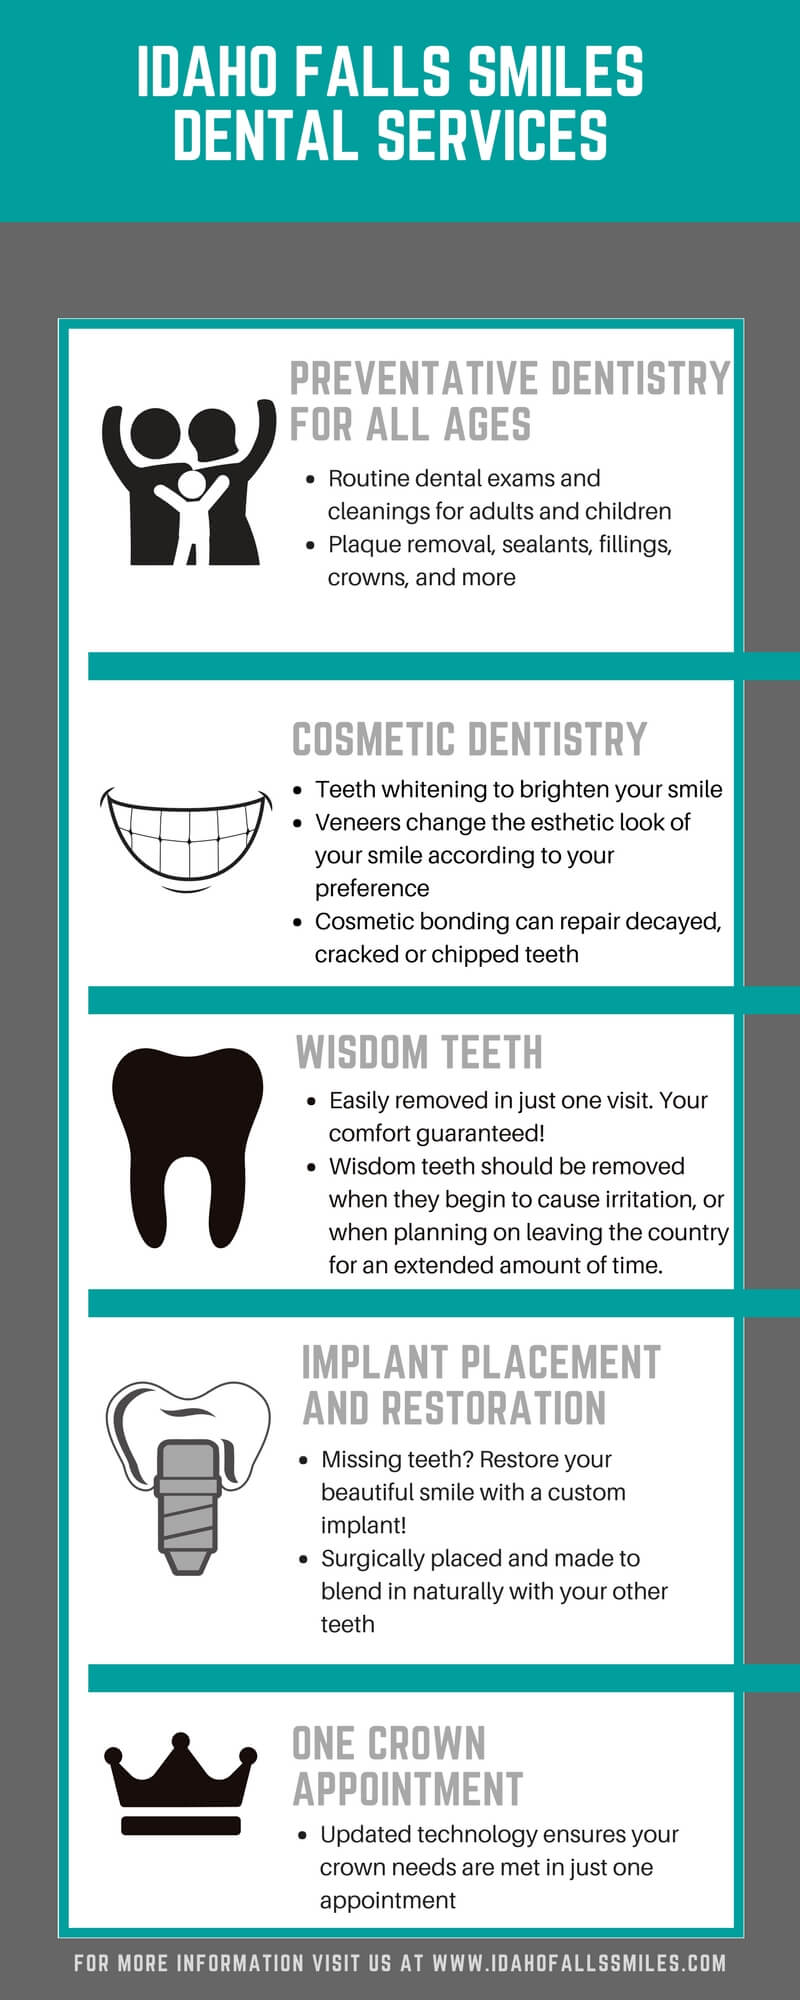 Idaho Falls Smiles Dental Services infograph